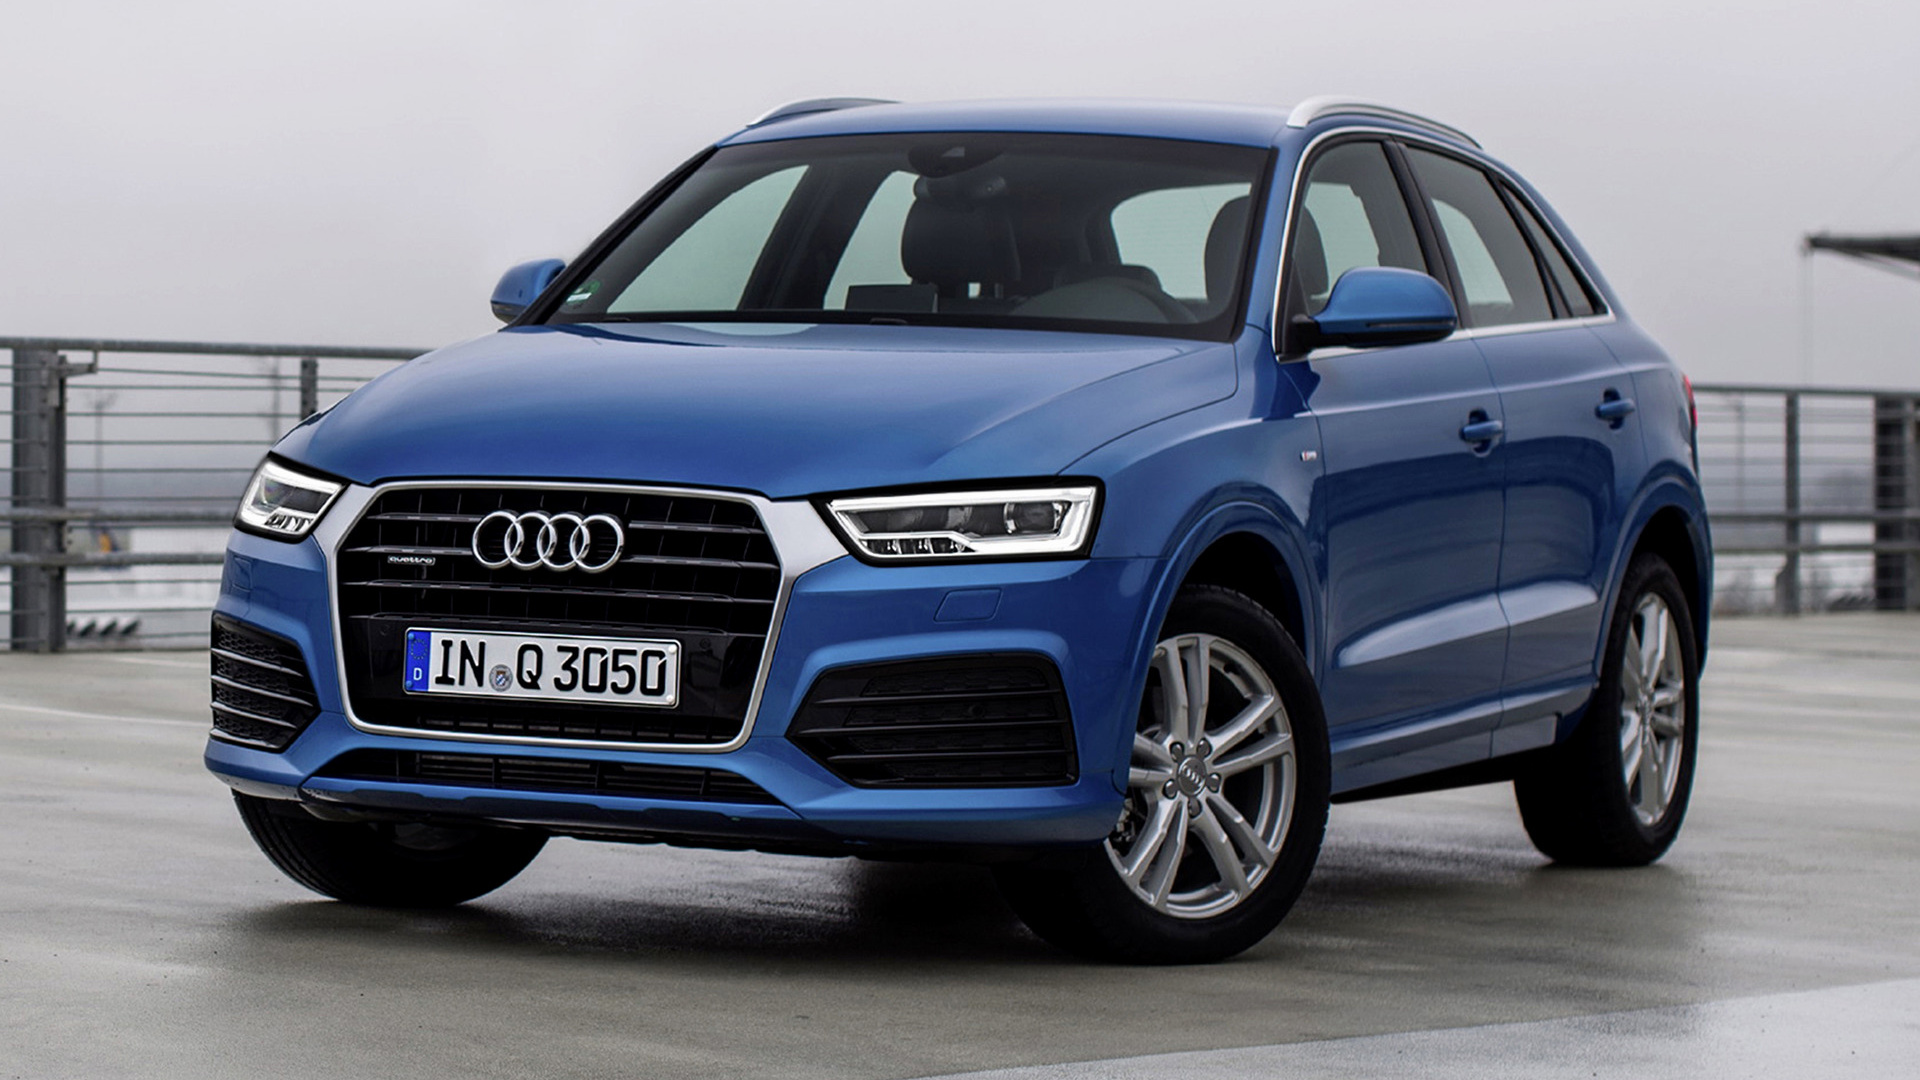 2015 Audi Q3 S line - Wallpapers and HD Images | Car Pixel